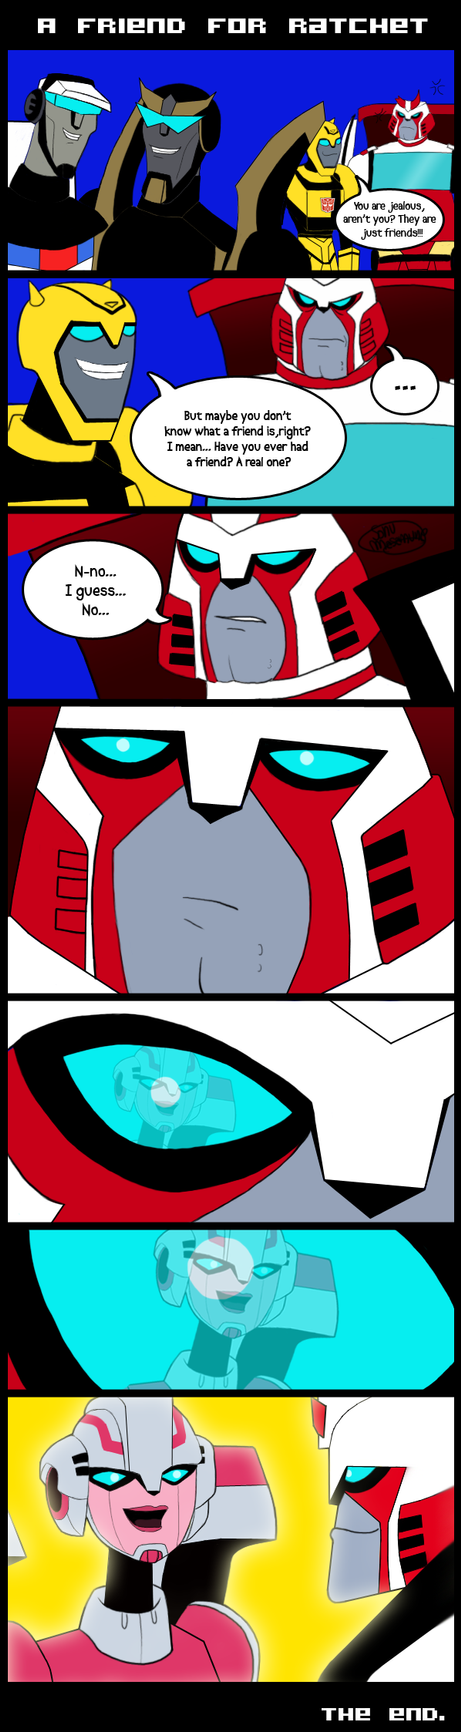 TFA - A friend for Ratchet by ForeverSonu